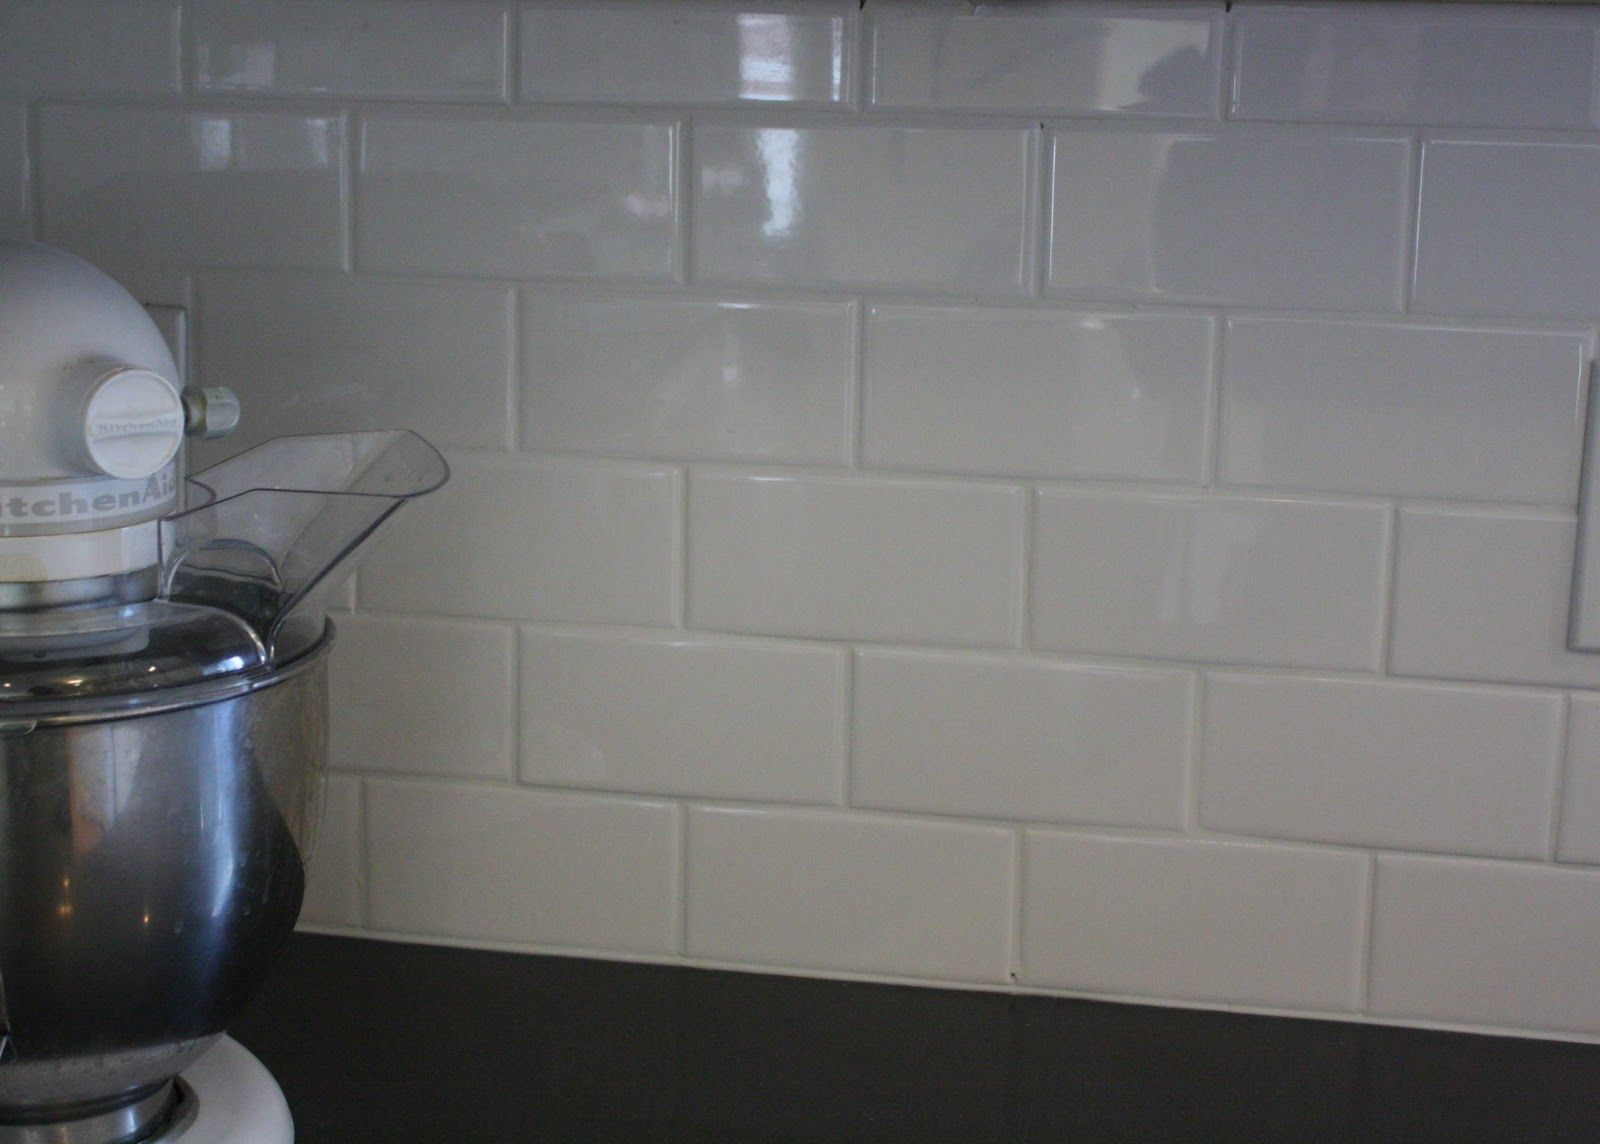 No grout glass tile backsplash love the pure white subway tile backsplash but with the accent tile